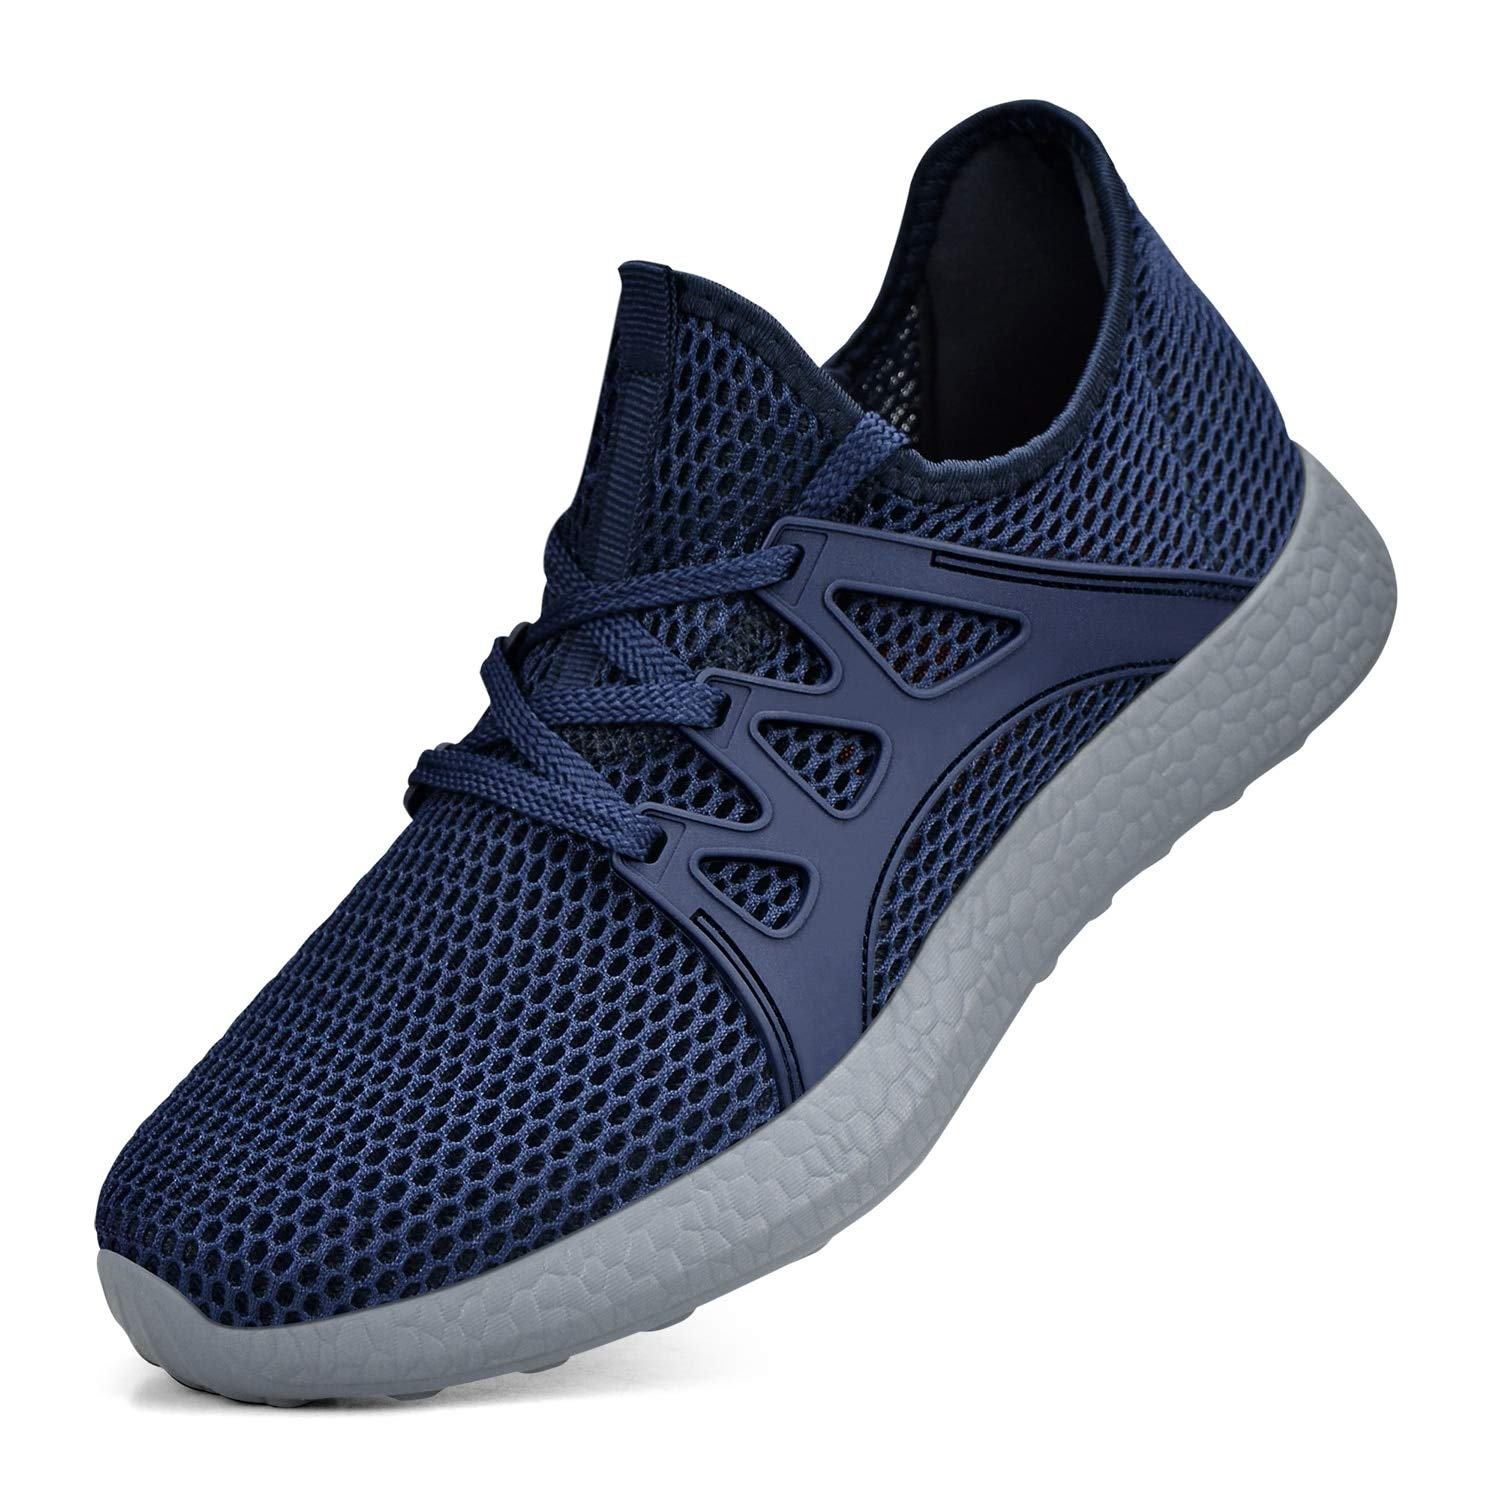 Simasoo Boy's Shoes Breathable Mesh Lightweight Gym Athletics Sports Running Shoes Blue/Grey Size 4.5